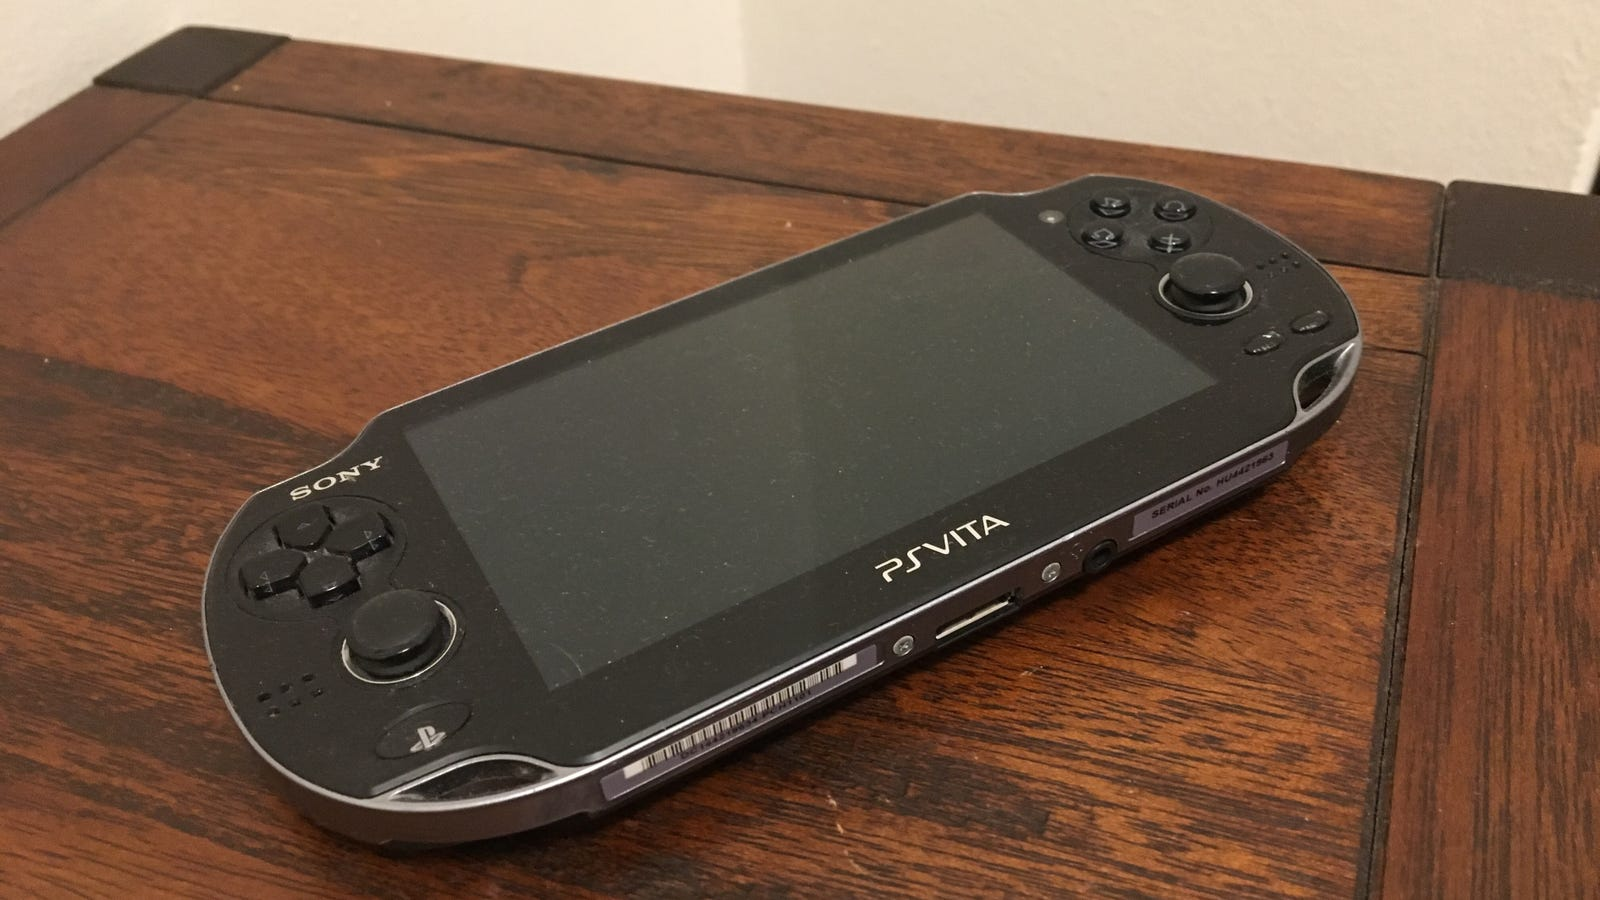 Sony Ends Production Of Physical Vita Games